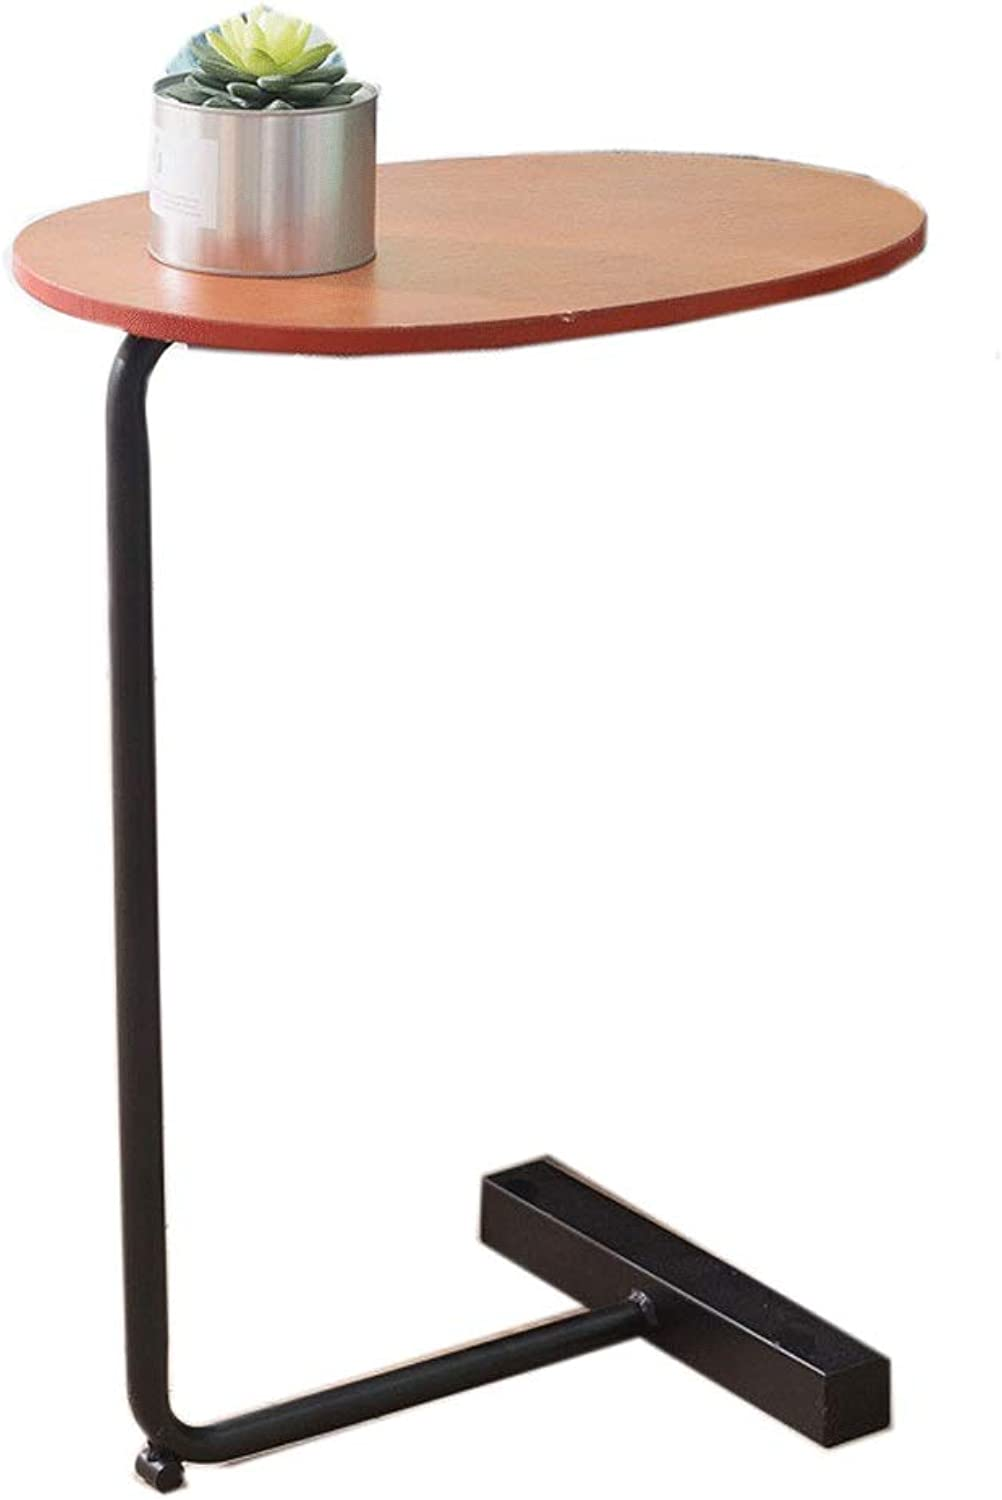 Multi-Function Round Coffee Table Side Table Shelf Work Table Iron and Solid Wood Family Living Room and Bedroom Bedside (color   Black)